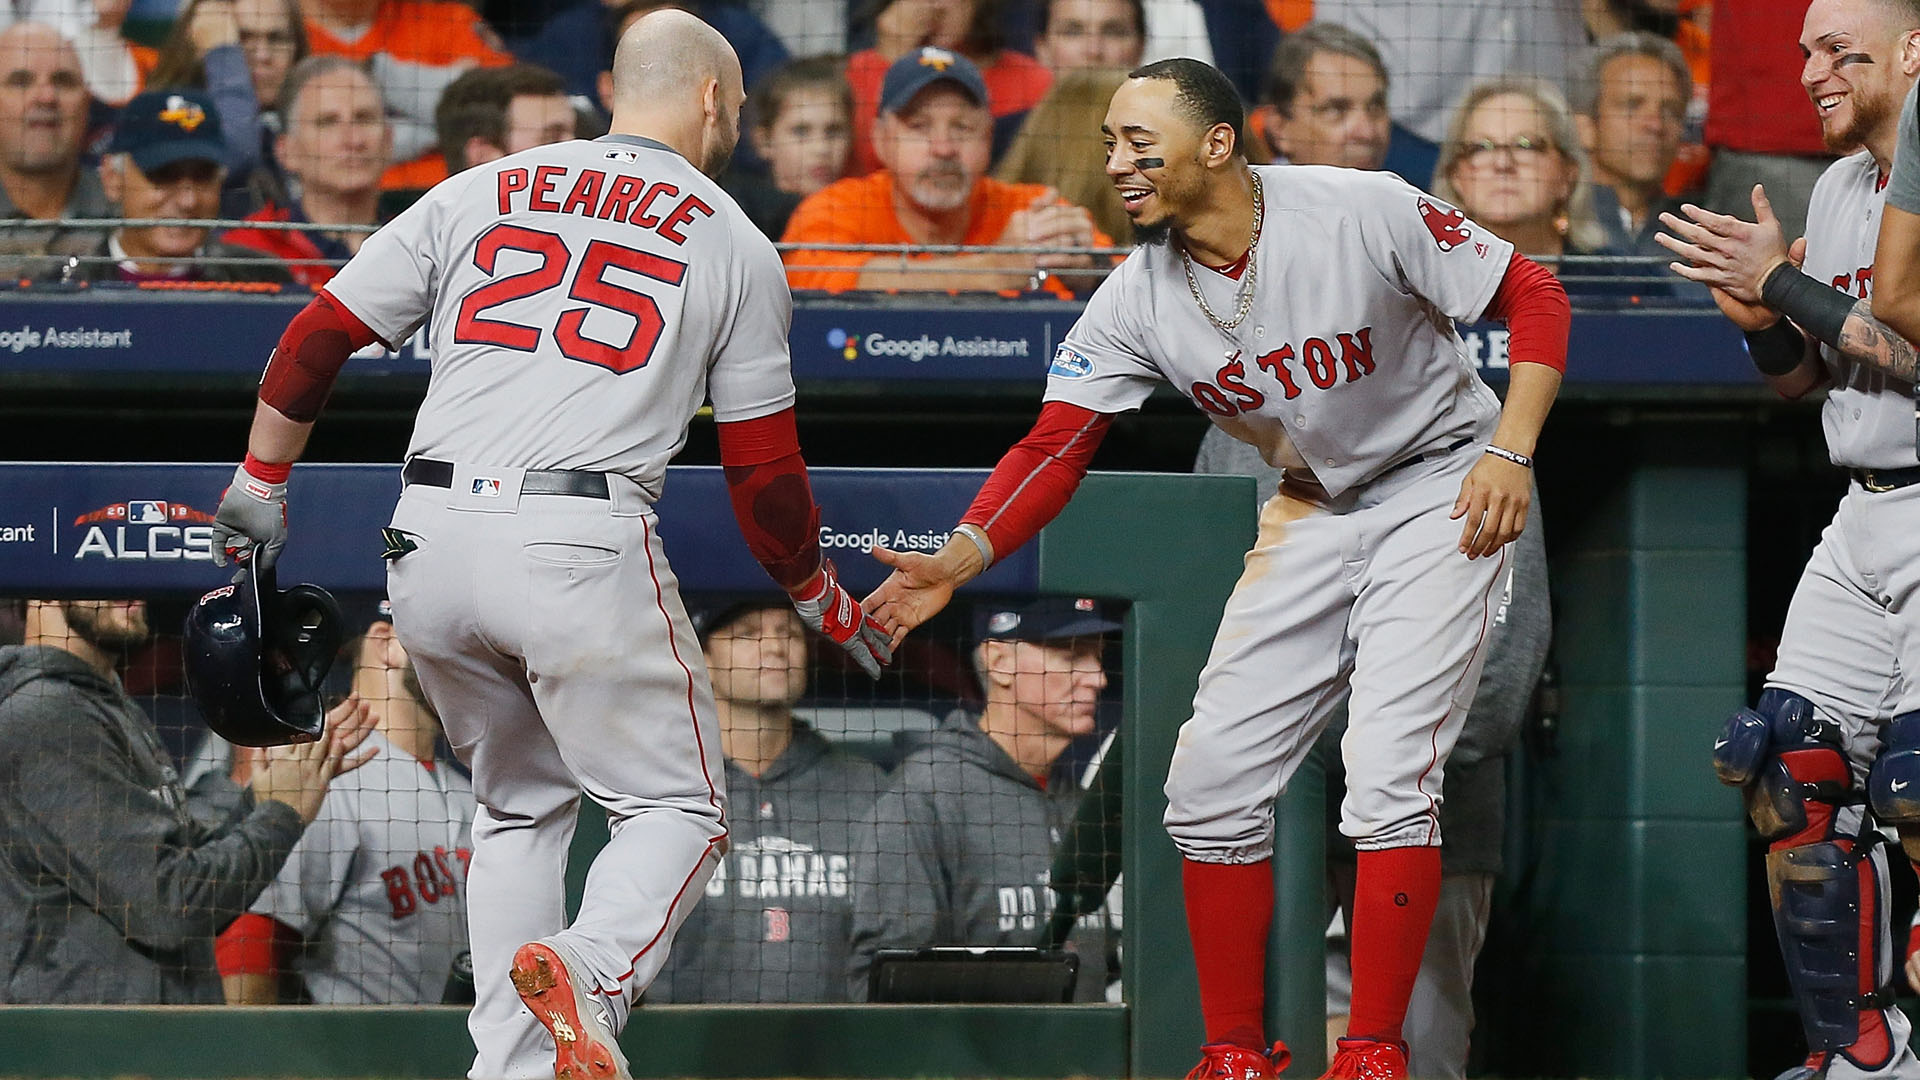 ALCS: Bradley Jr. powers Red Sox to 2-1 series lead